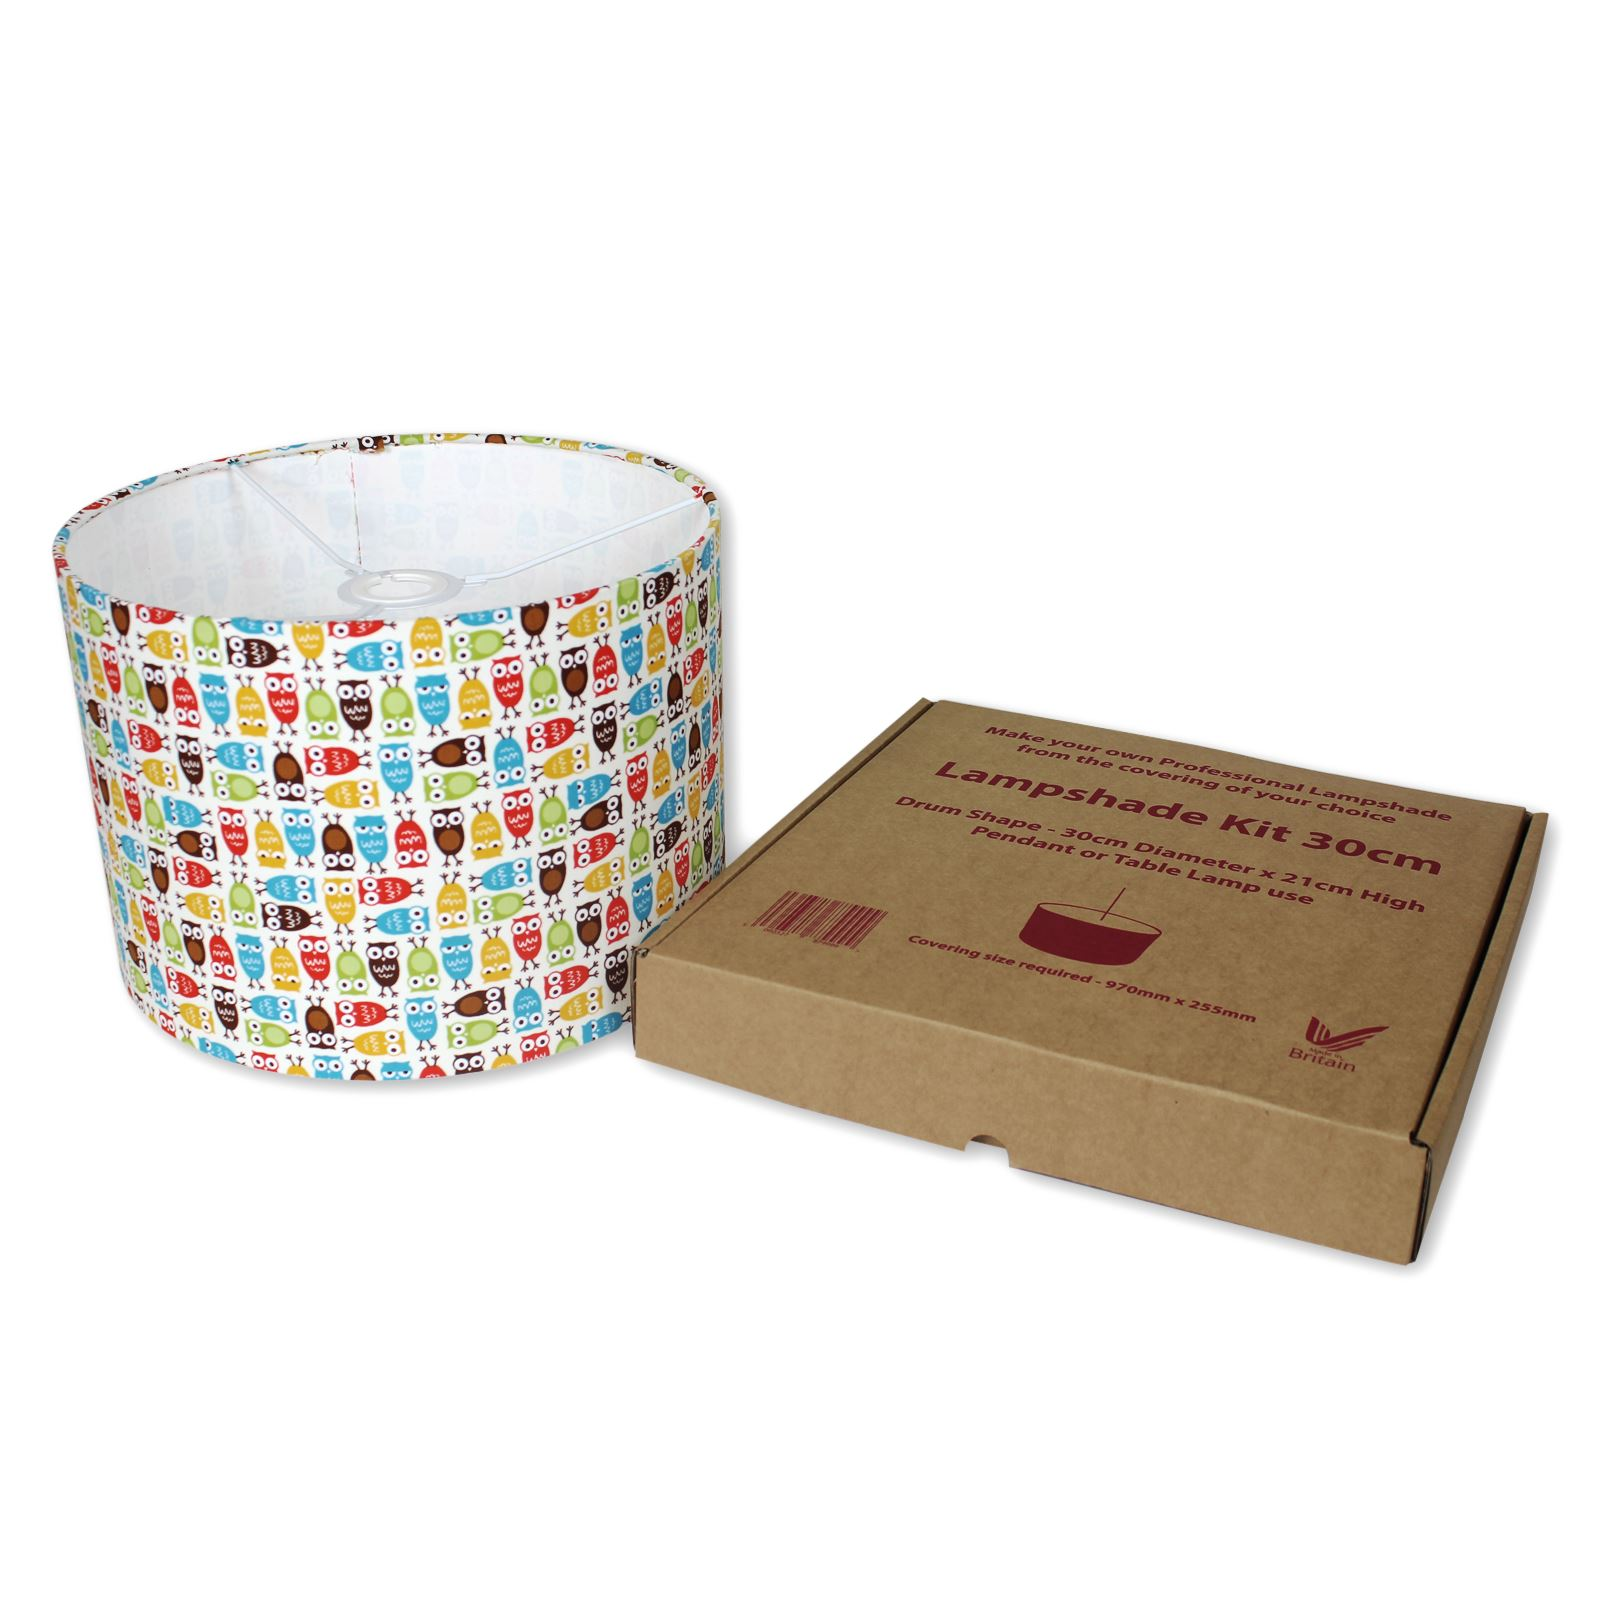 Lampshade Kits Make Your Own Lampshades 20cm 30cm 40cm